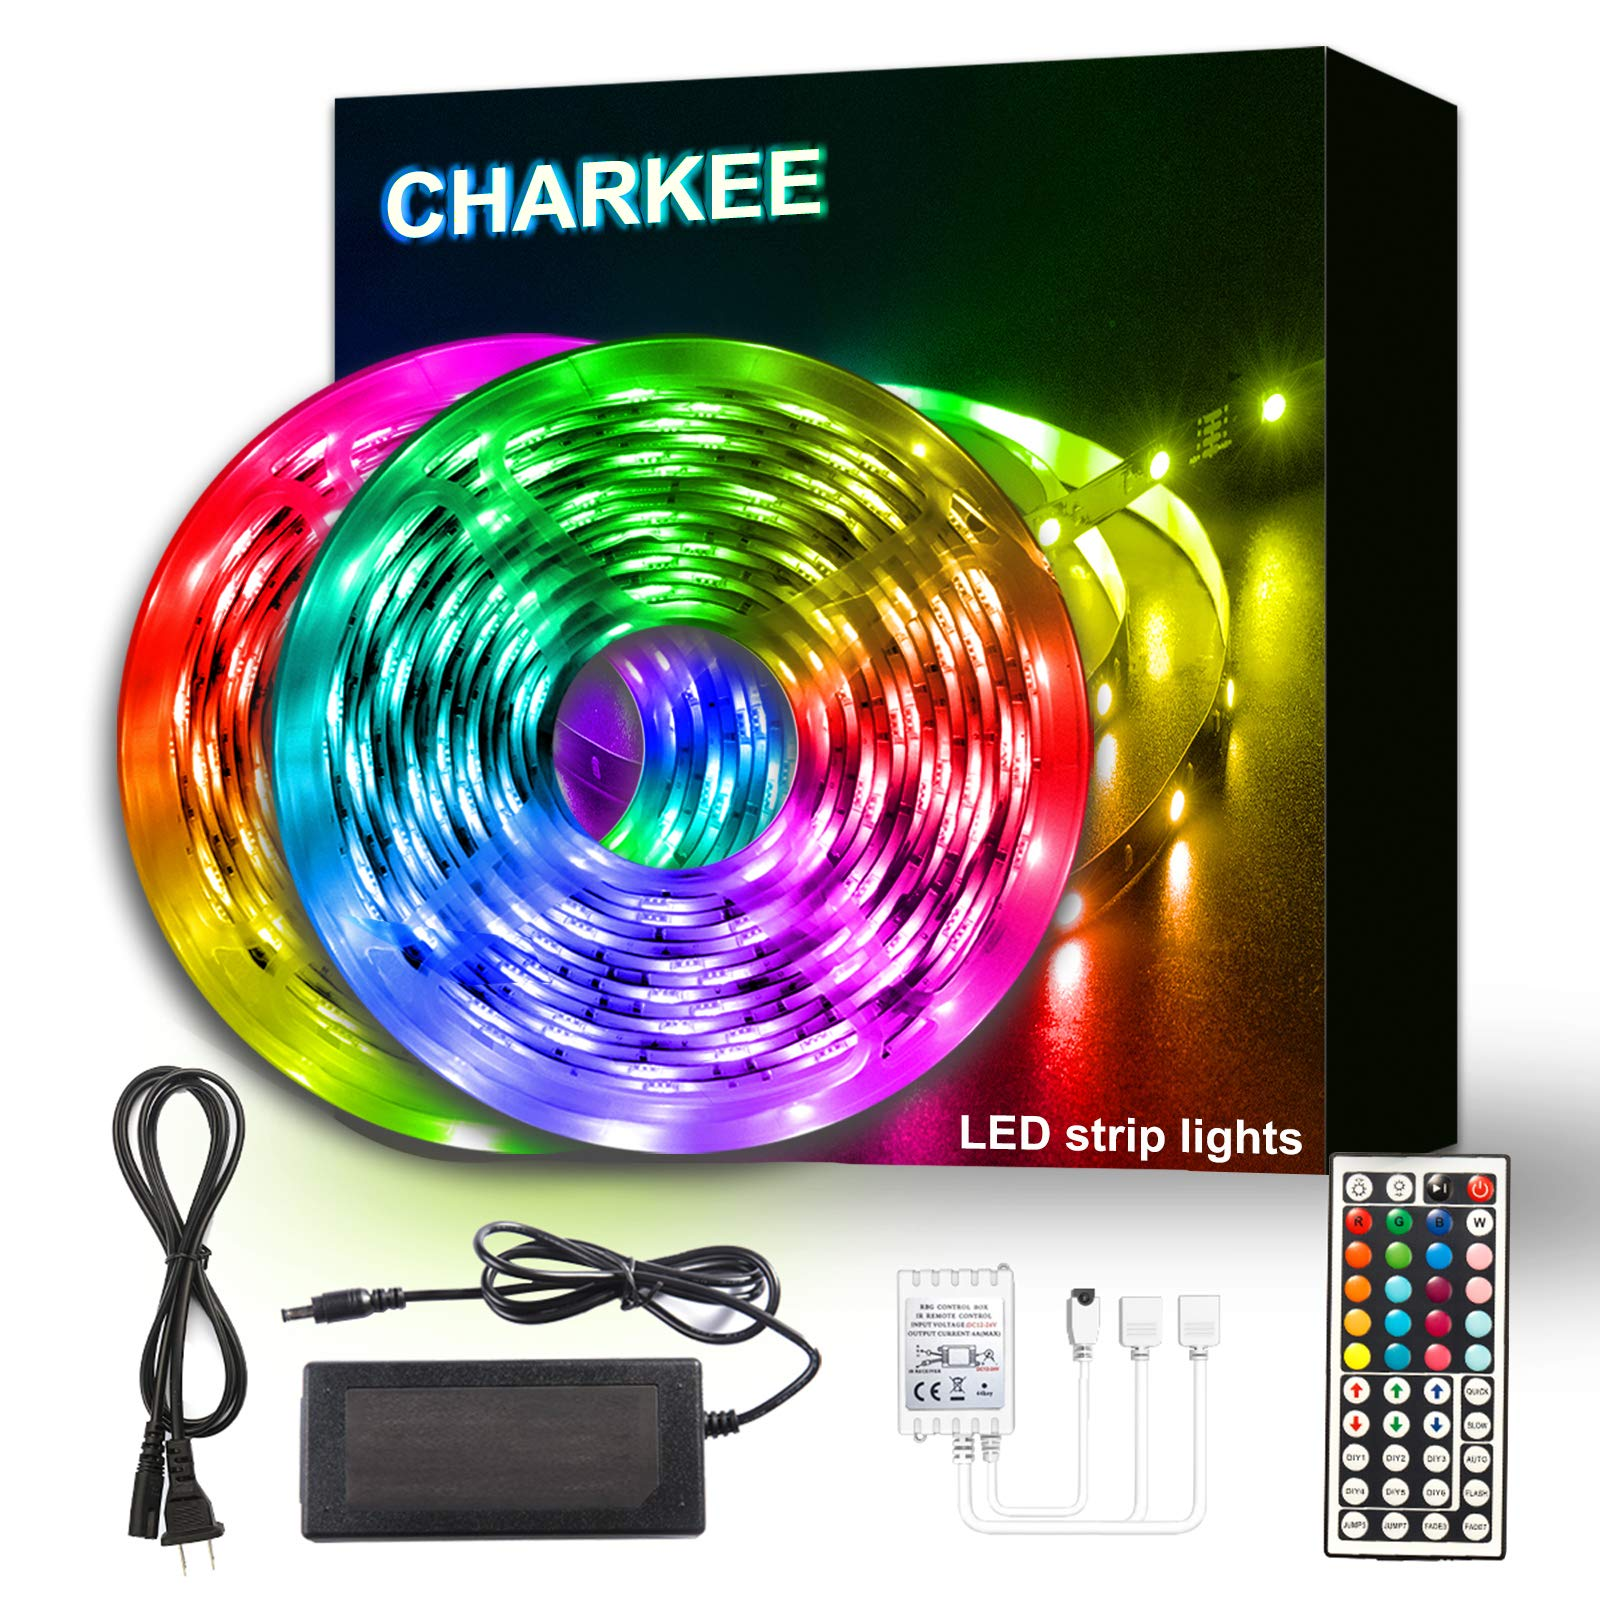 Charkee Led Lights for Bedroom 50ft, 2 Rolls of 25ft Led Light Strips with Remote and Power Supply for Bedroom, Room, Kitc...